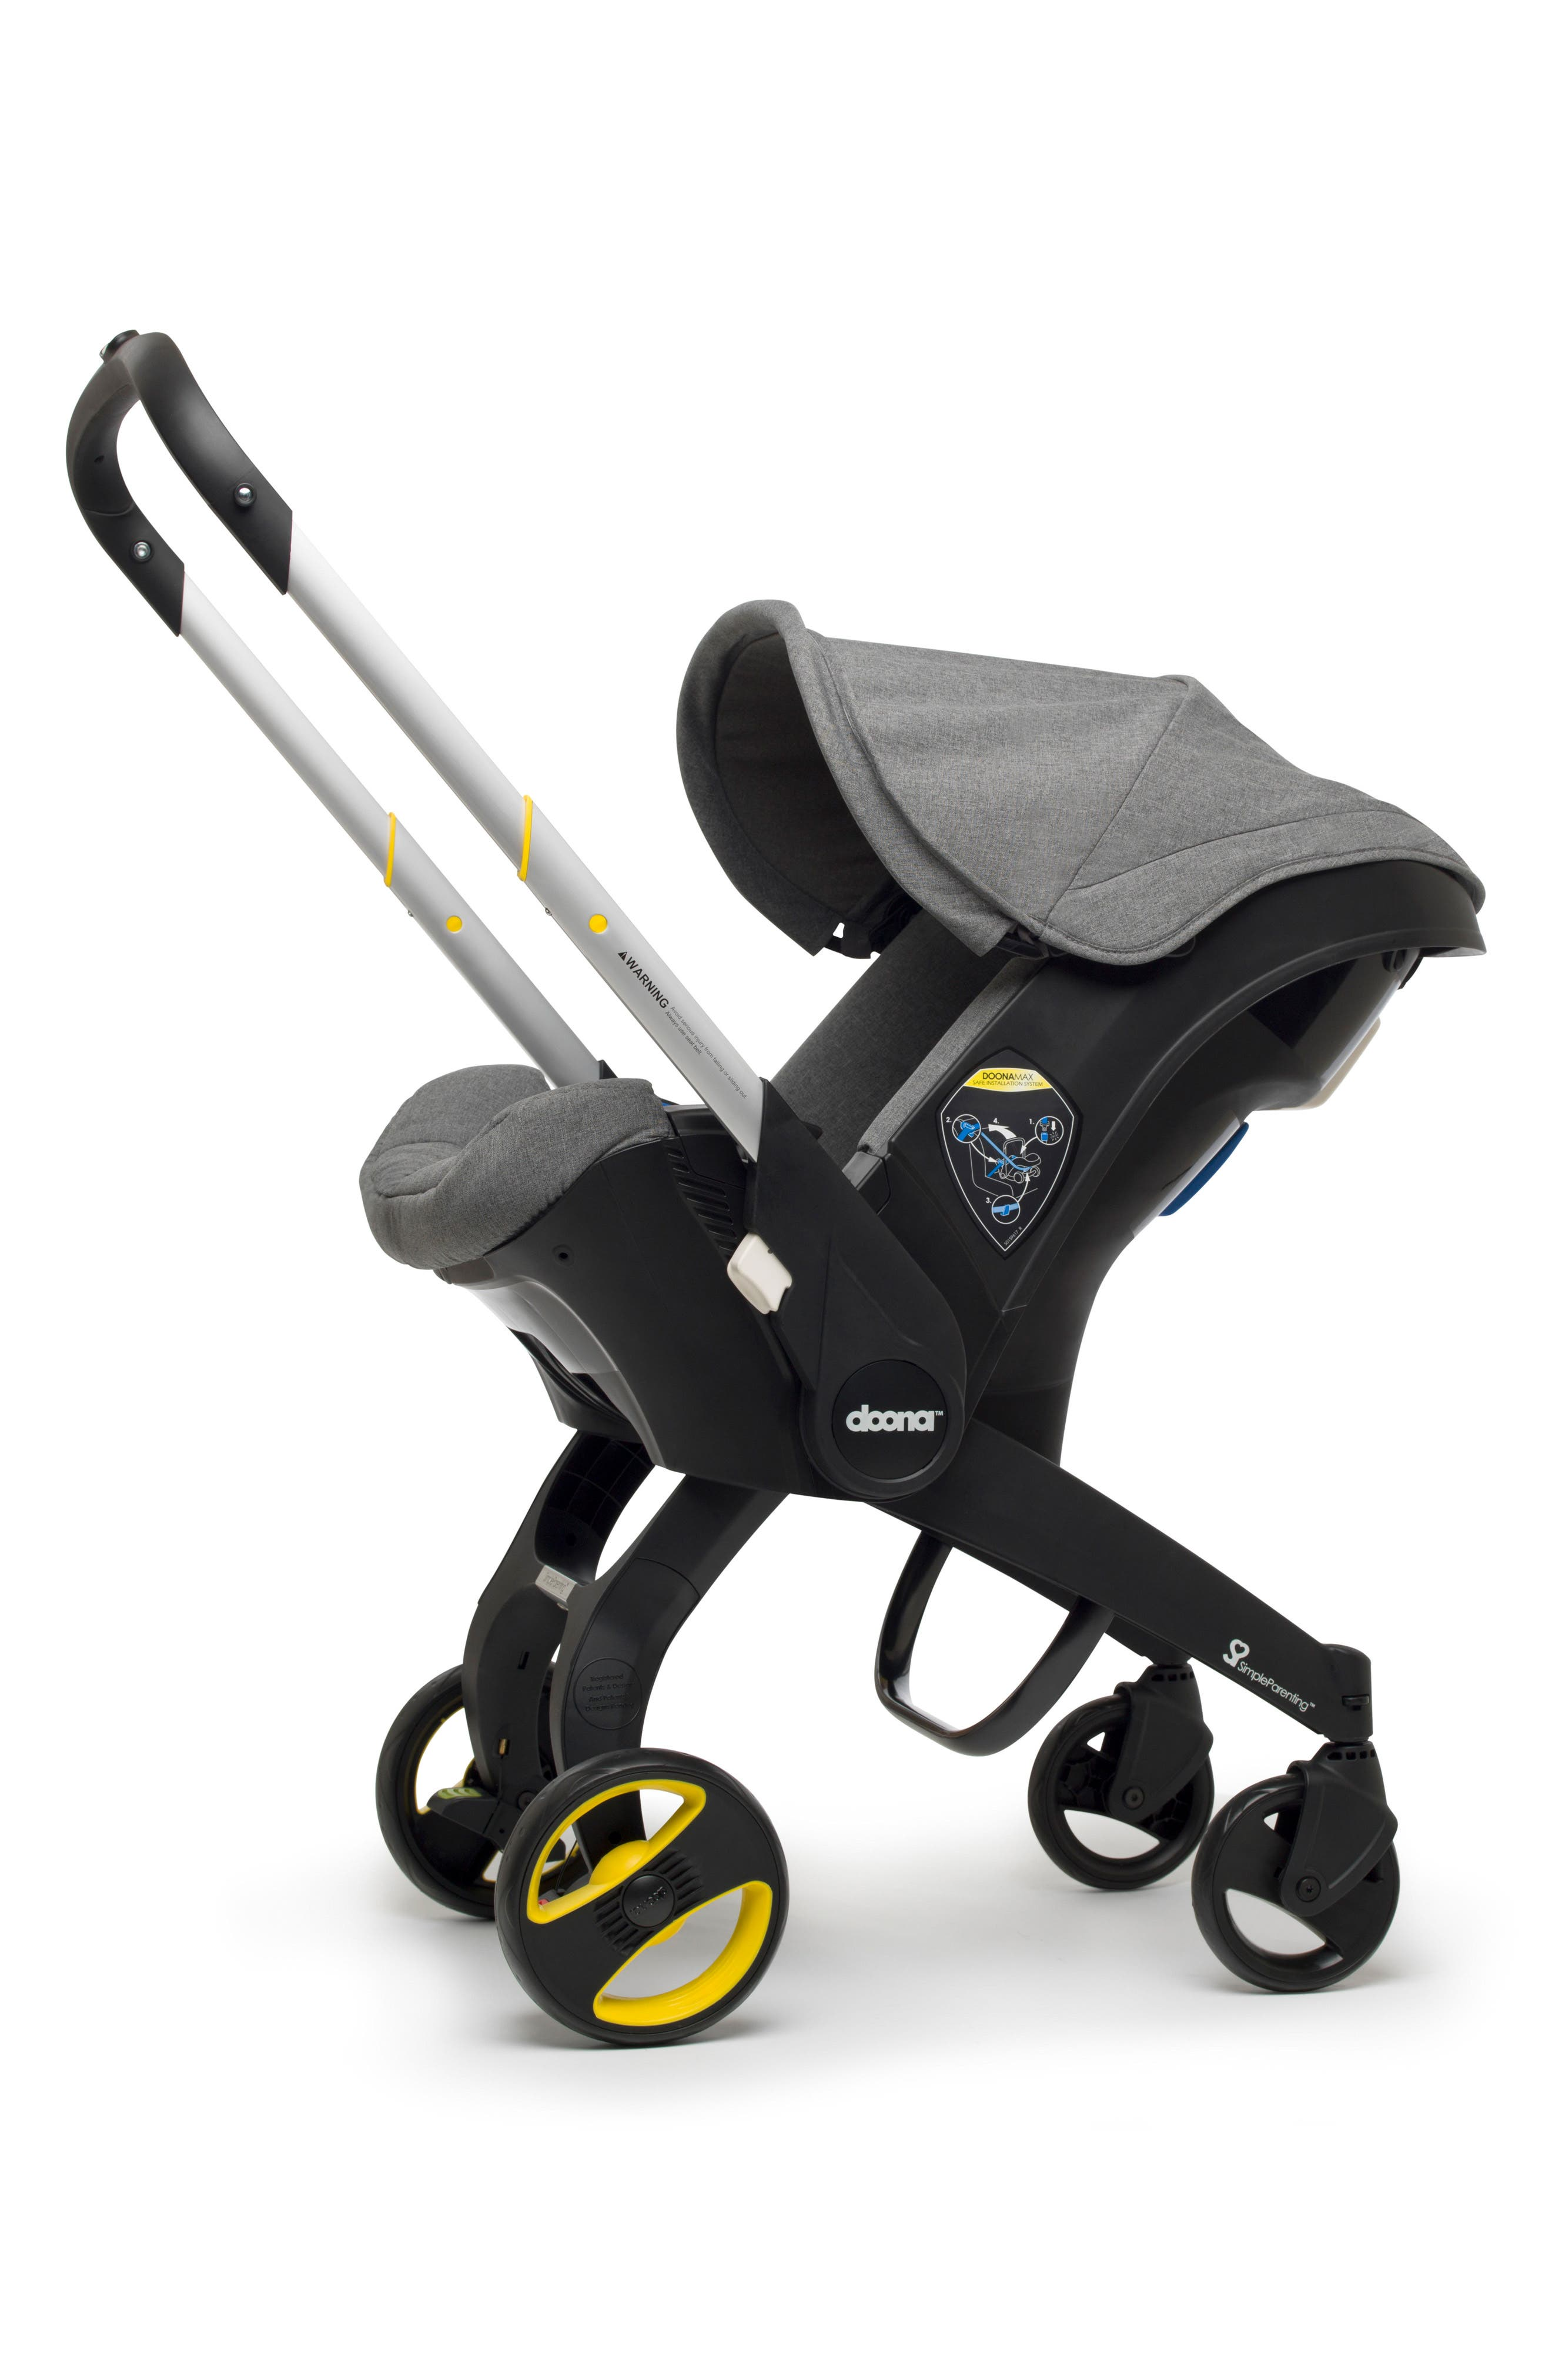 Convertible Infant Car Seat/Compact Stroller System,                             Alternate thumbnail 2, color,                             GREY/ STORM